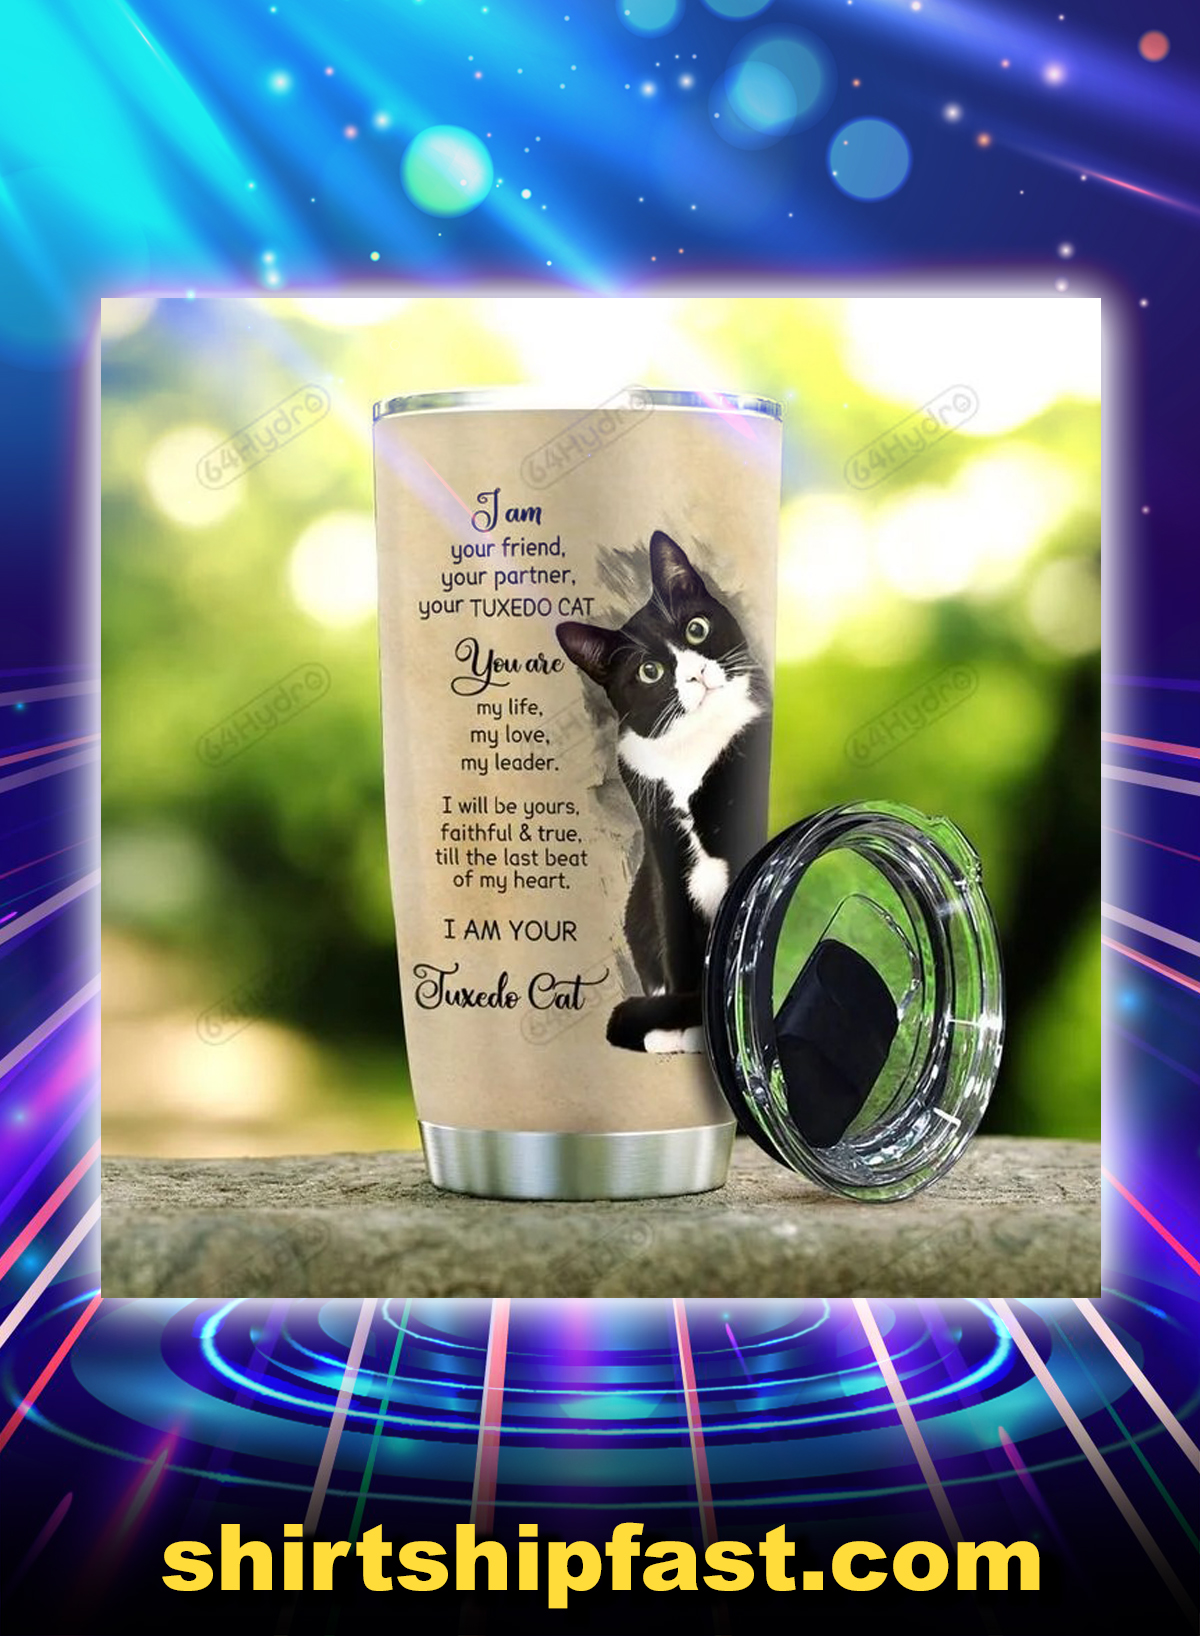 Tuxedo cat i am your friend personalized custom name tumbler - Picture 2